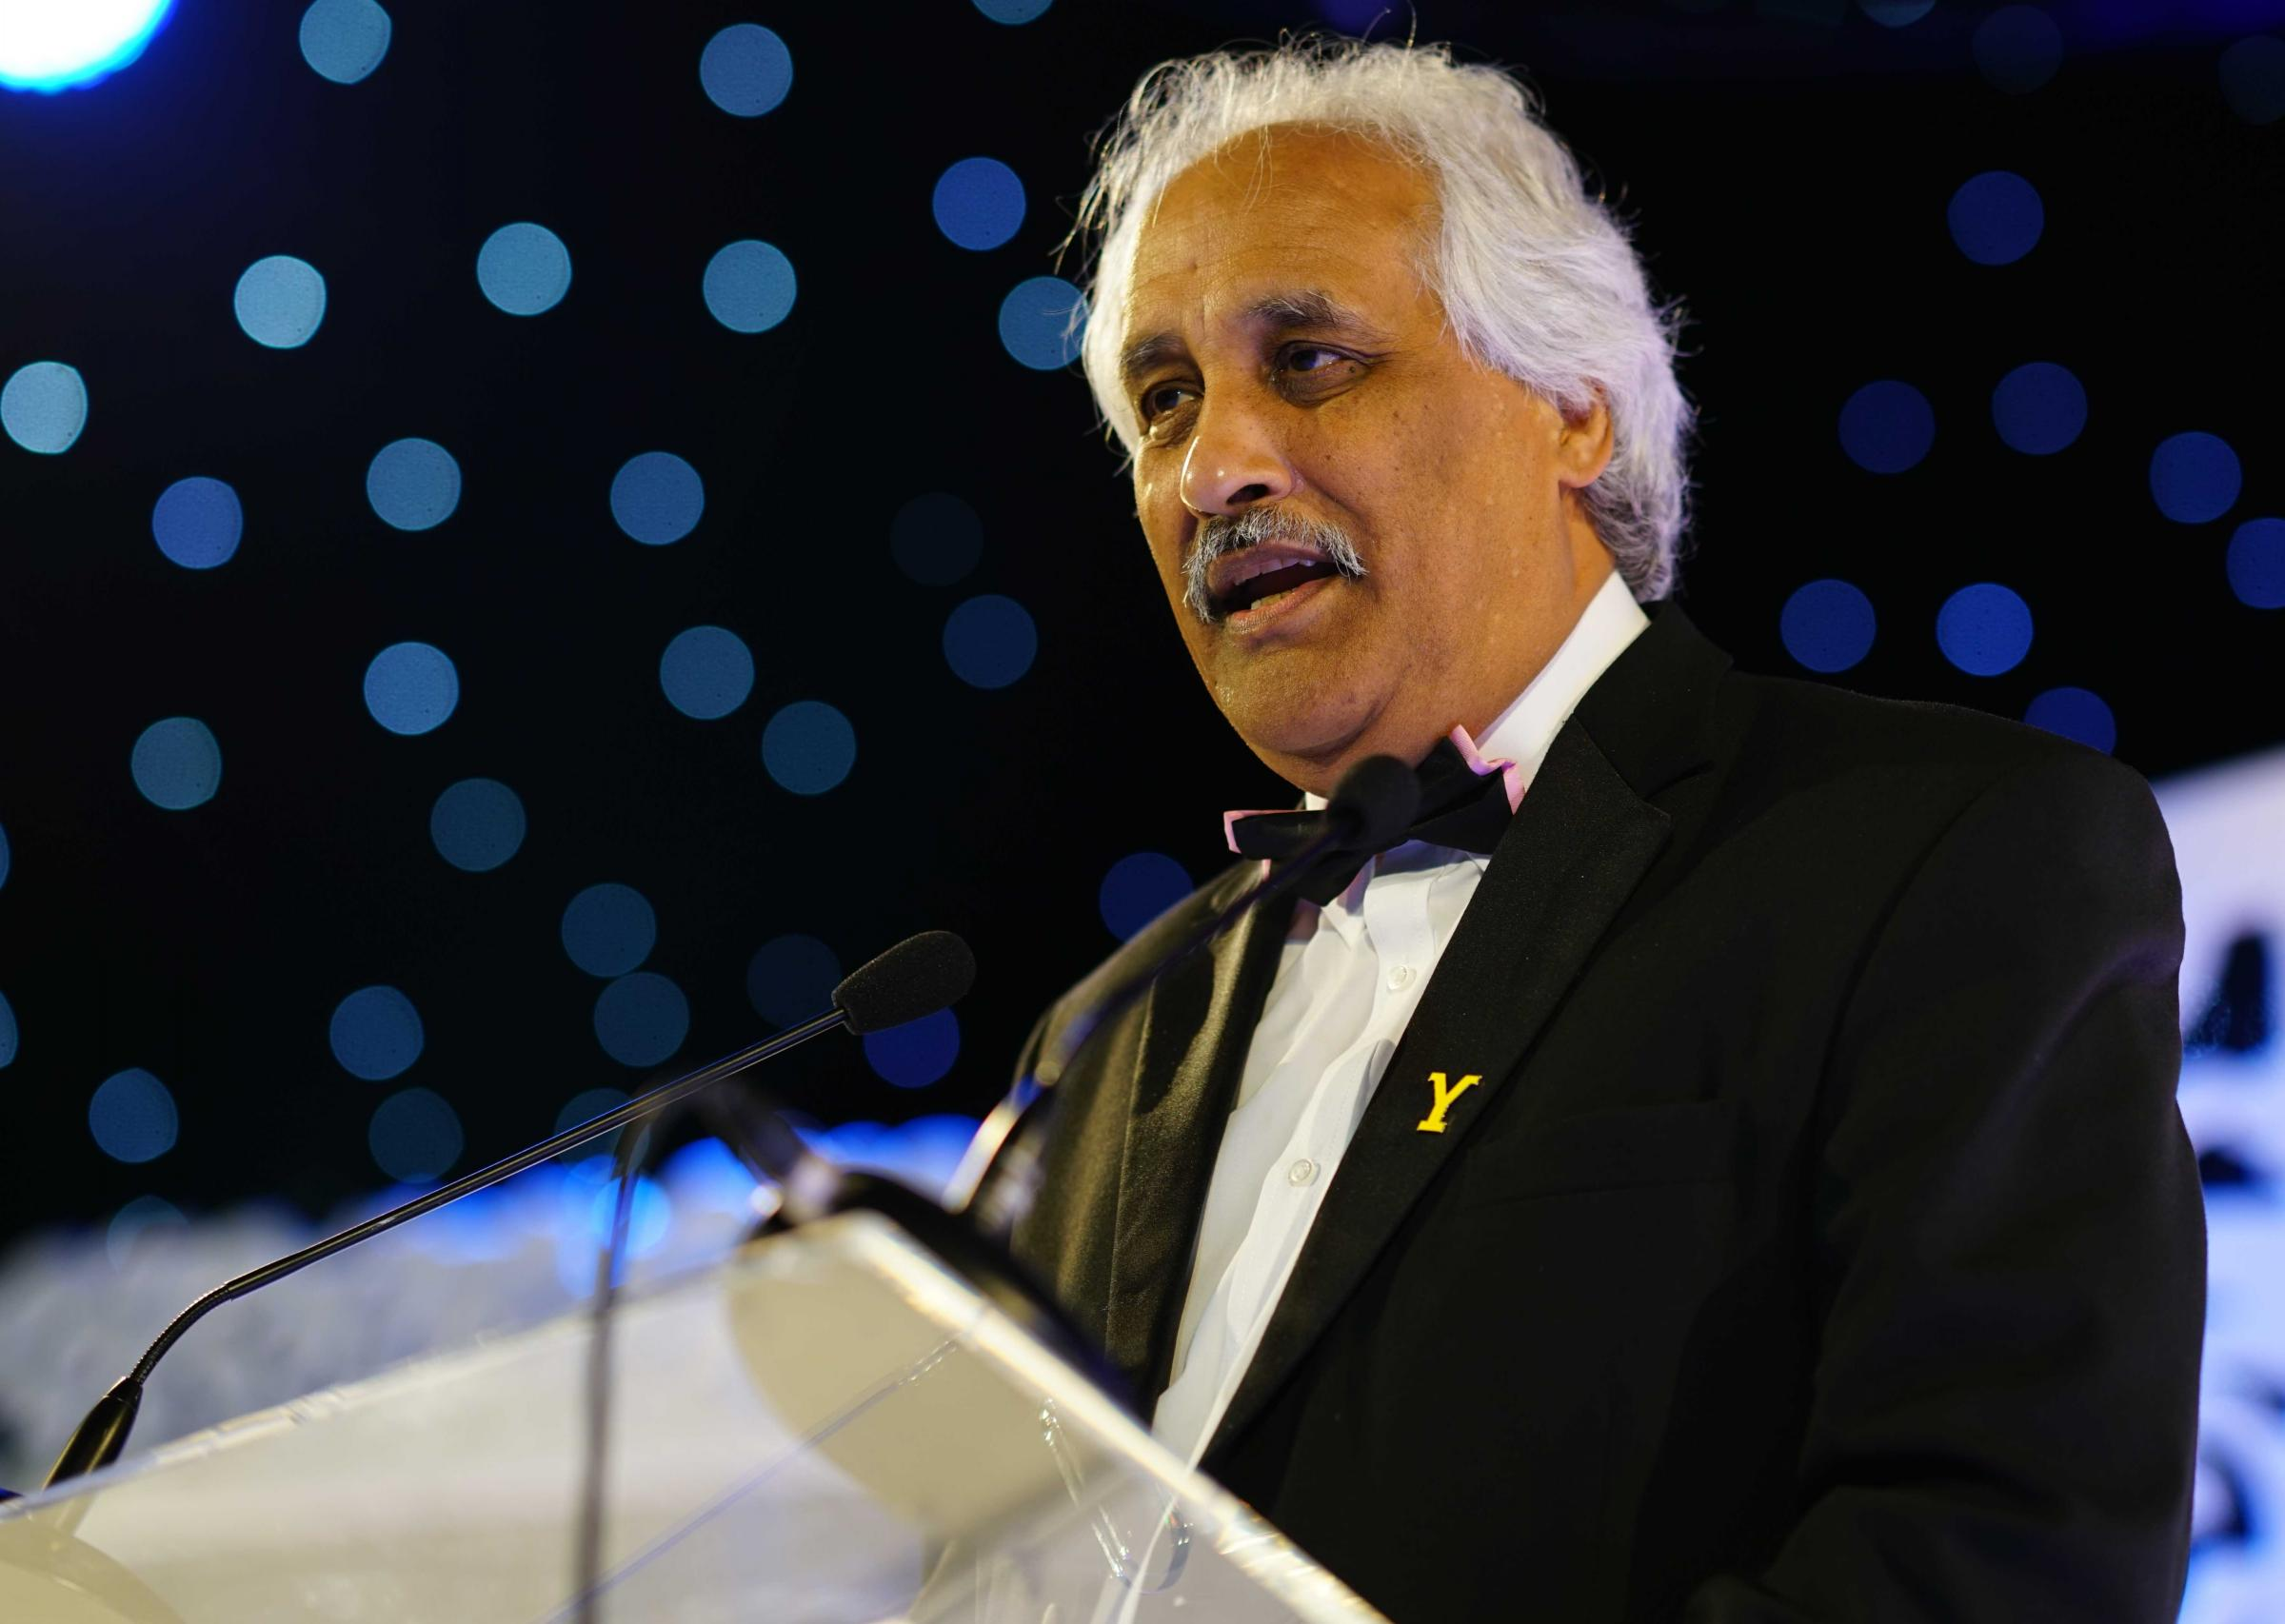 Aagrah managing director Mohammed Aslam speaks at his firm's annual dinner